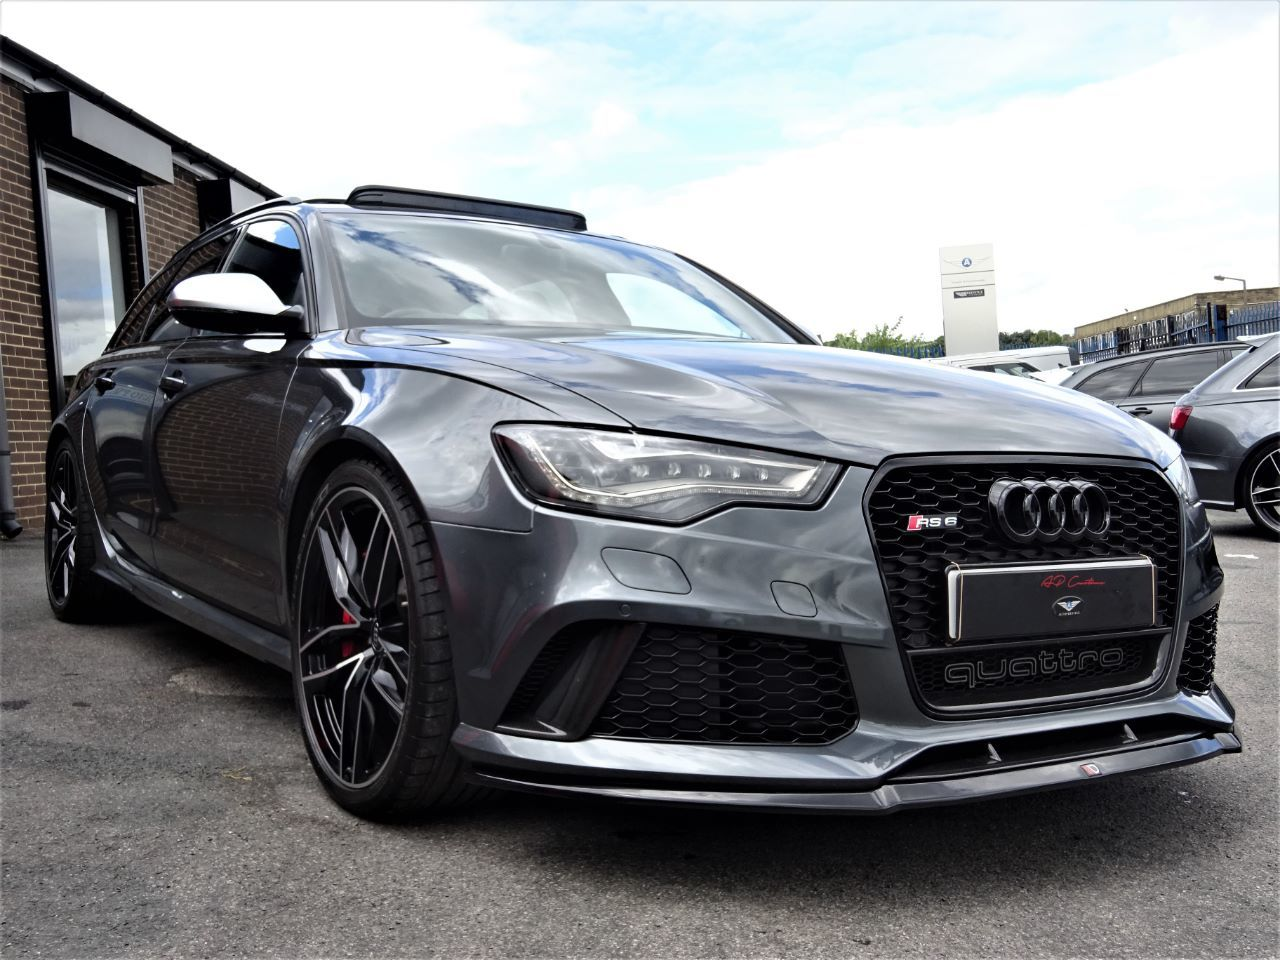 Audi RS6 4.0T FSI V8 Bi-Turbo QUATTRO 64 REG WITH CARBON PACK DYNAMIC PACK AND EXTRAS EXTENSIVE HISTORY FILE Estate Petrol Grey at Autoprestige Bradford